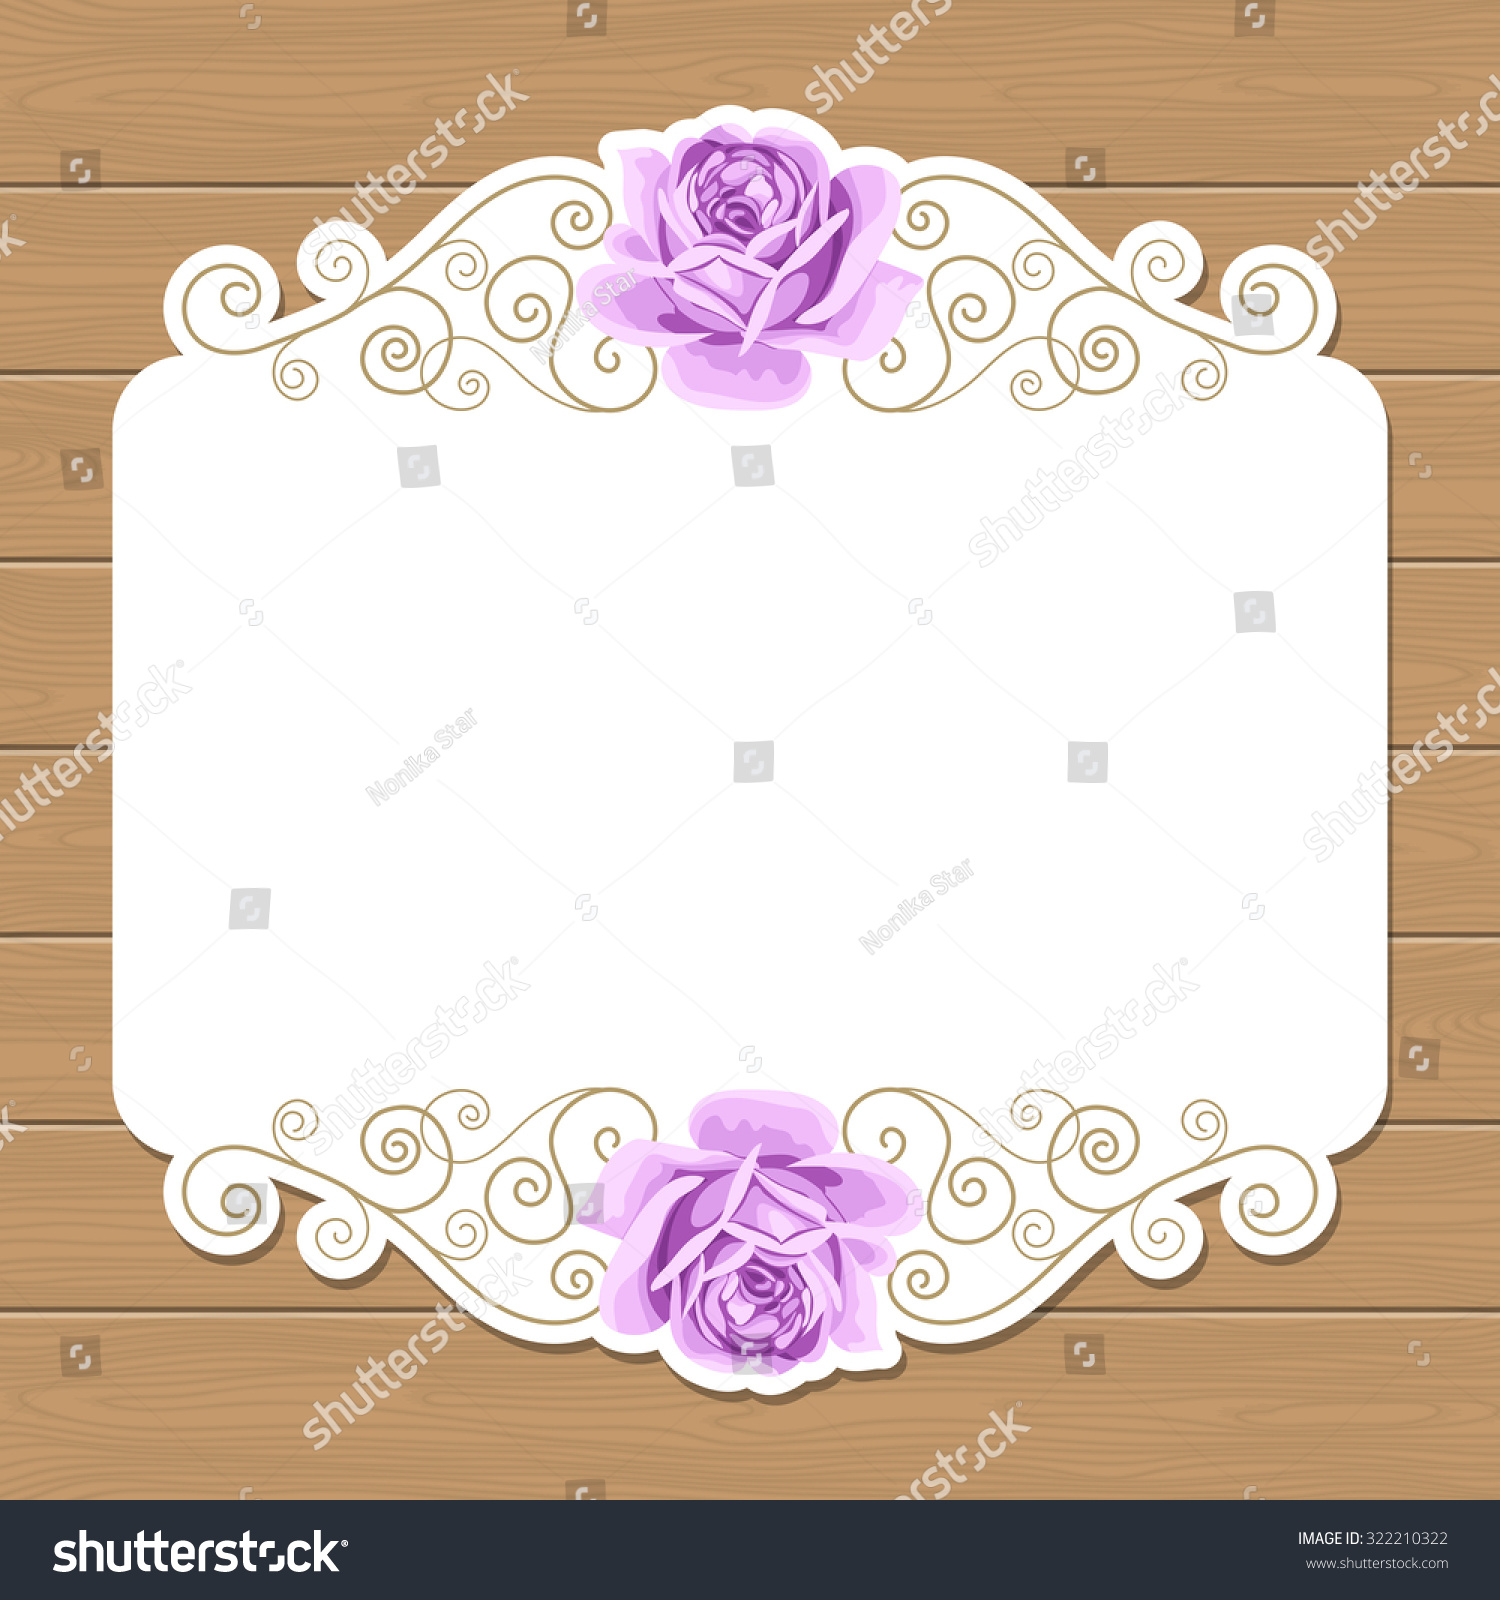 Wood Background With Hand Draw Roses And Gold Curly Design